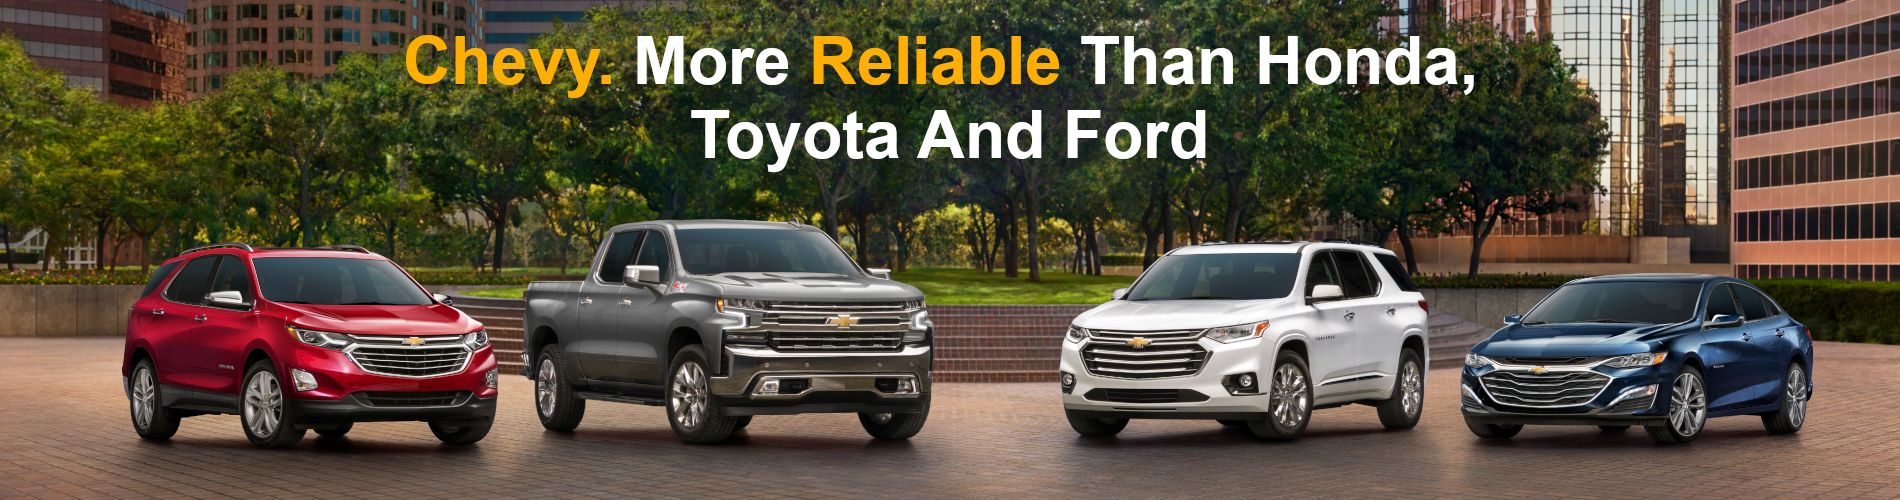 Chevy More Reliable than Honda Toyota and Ford